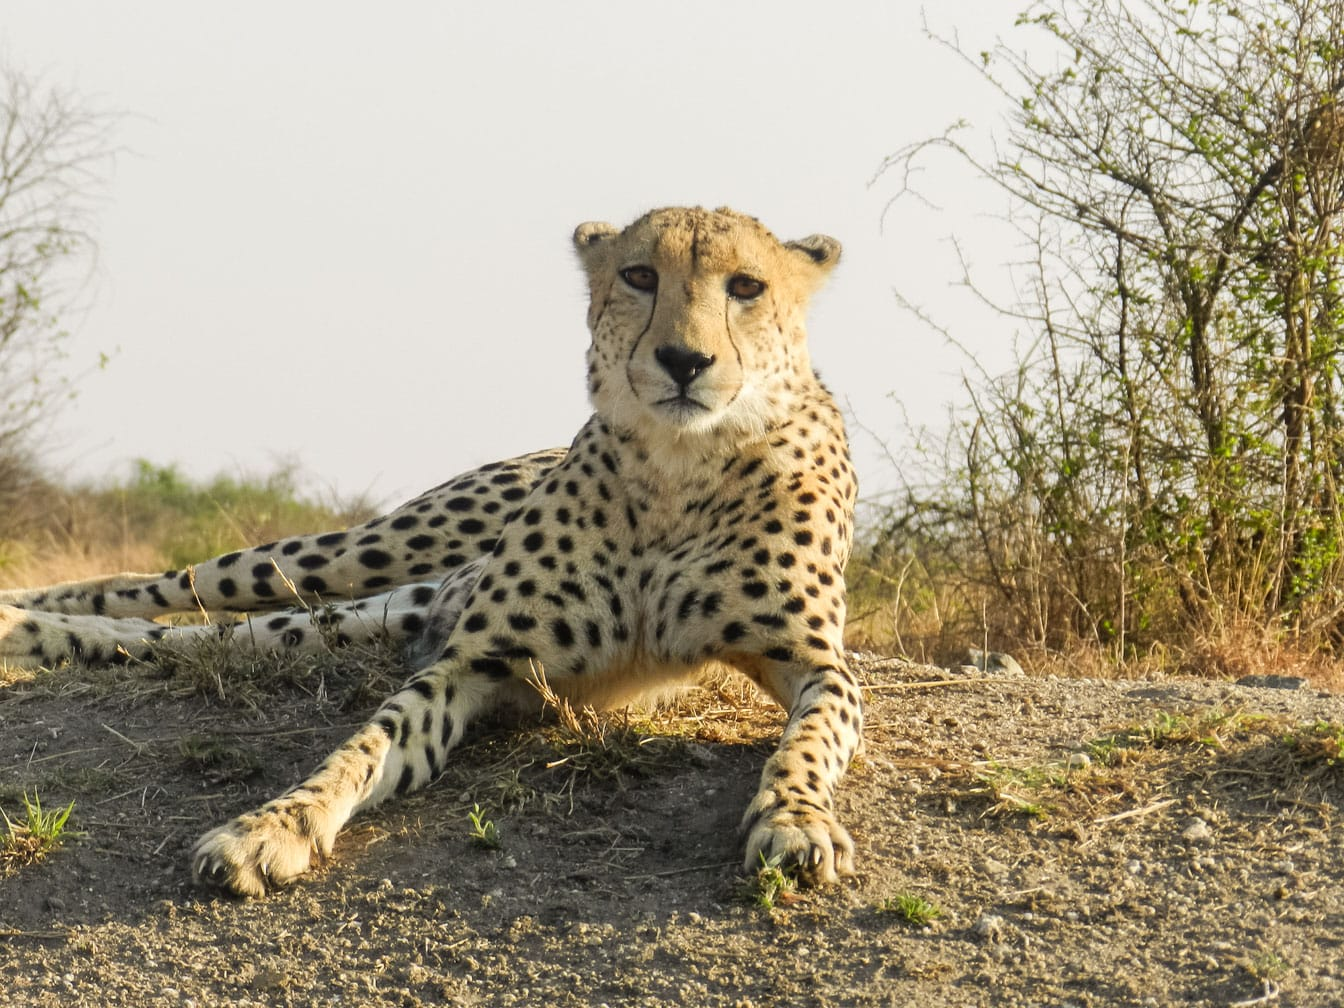 Cheetah on the Dar es Salaam to Lobito: Trail of Two Oceans journey